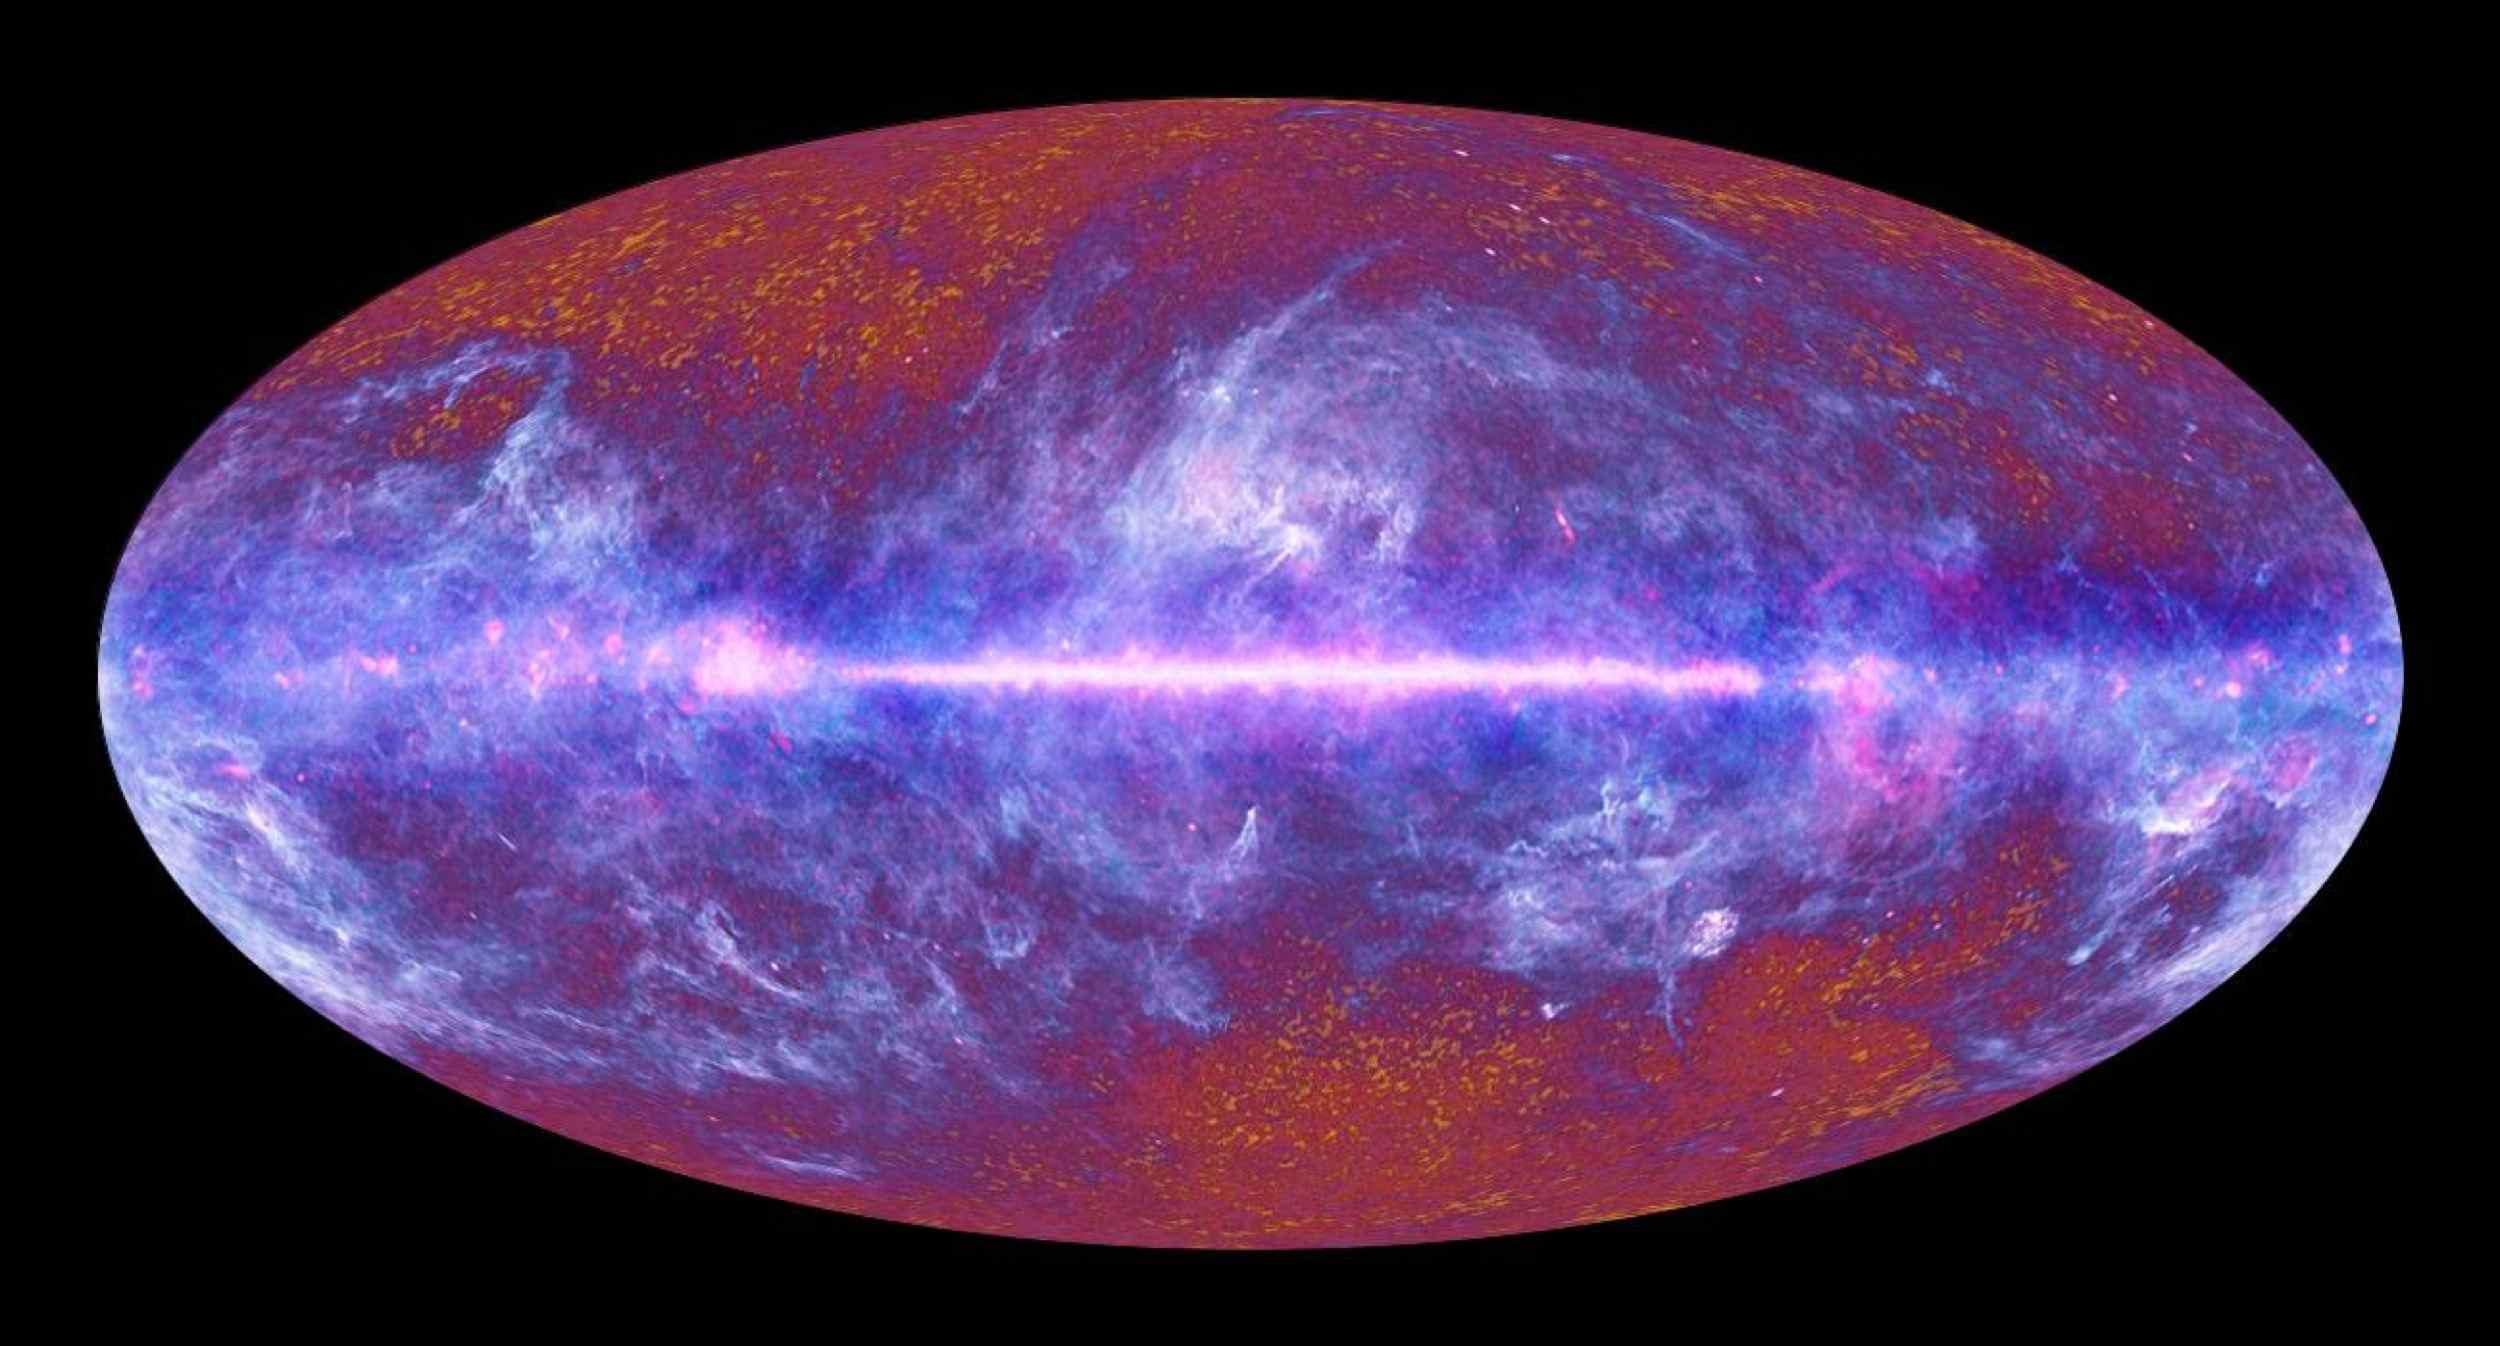 This image of the microwave sky was synthesized using data spanning the range of light frequencies detected by ESA's Planck. A vast portion of the sky is dominated by the diffuse emission from gas and dust in our Milky Way galaxy.